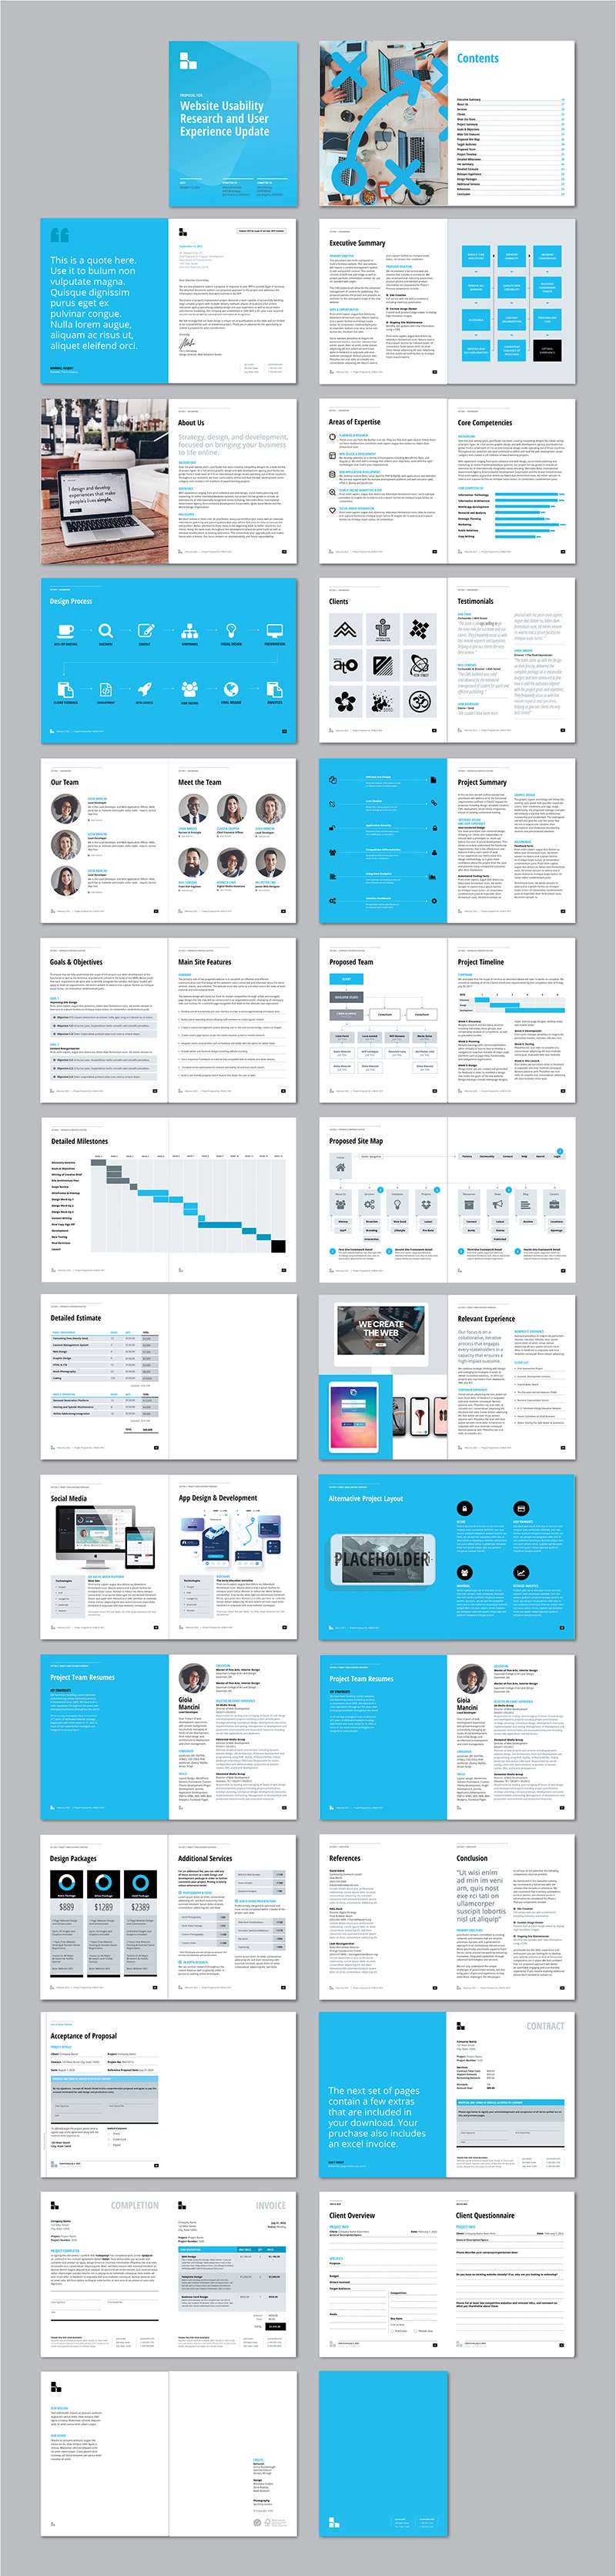 Thumbnails of all pages in the web design proposal template